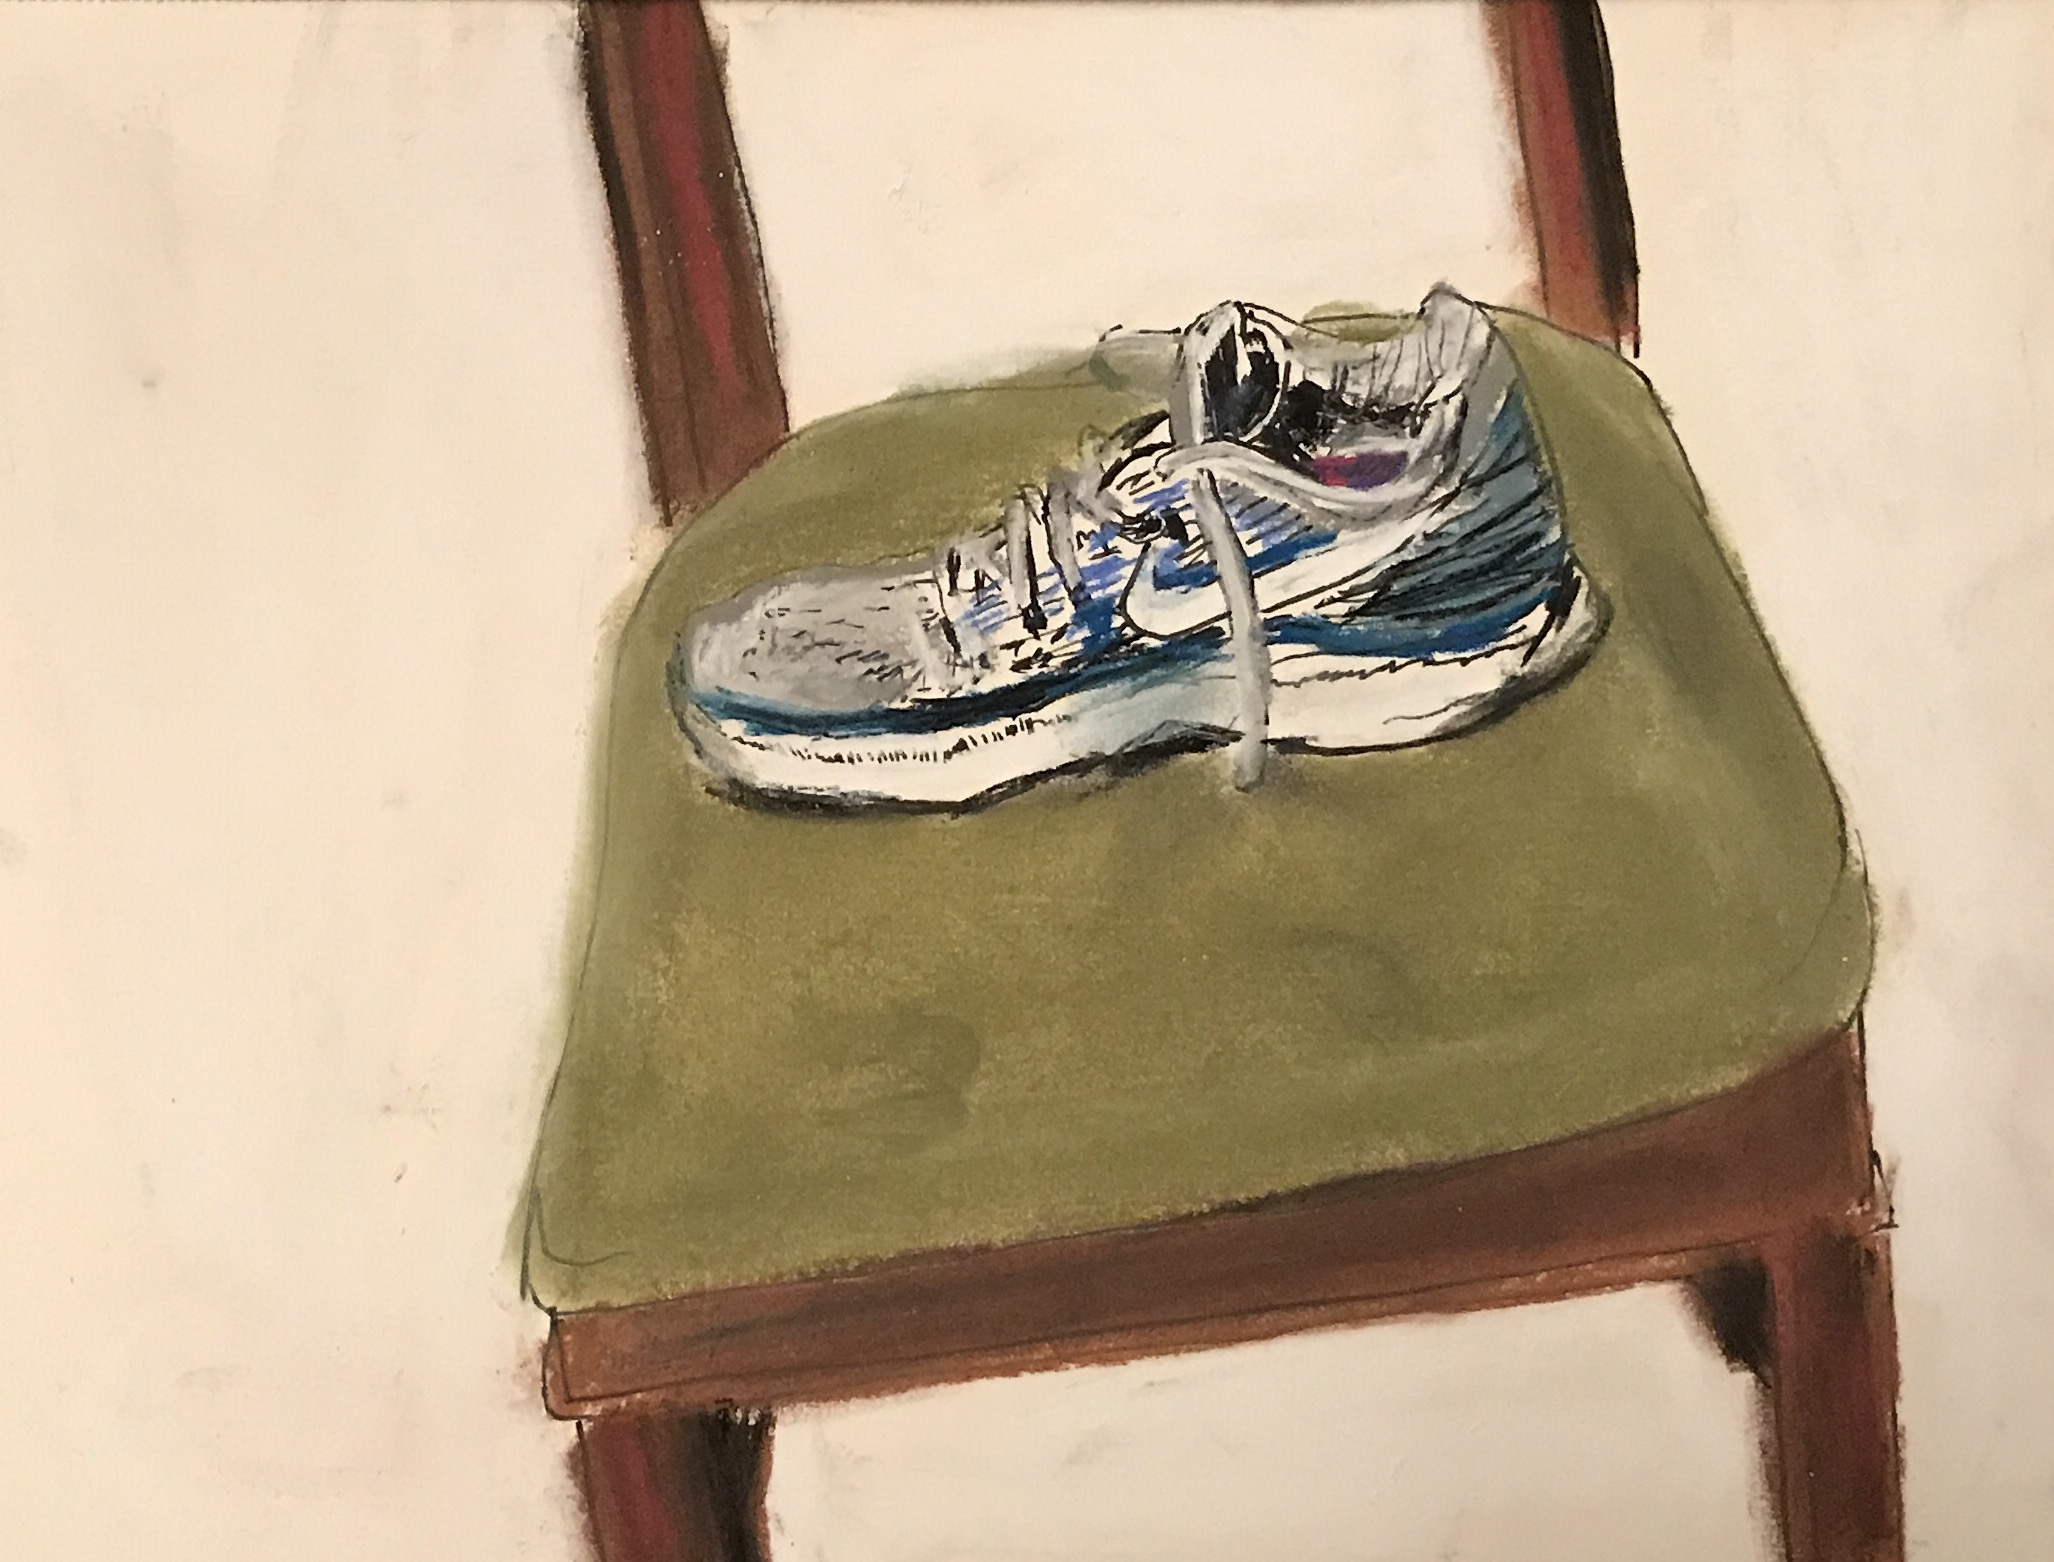 Shoes off the chair, pastel, 12x9, $35